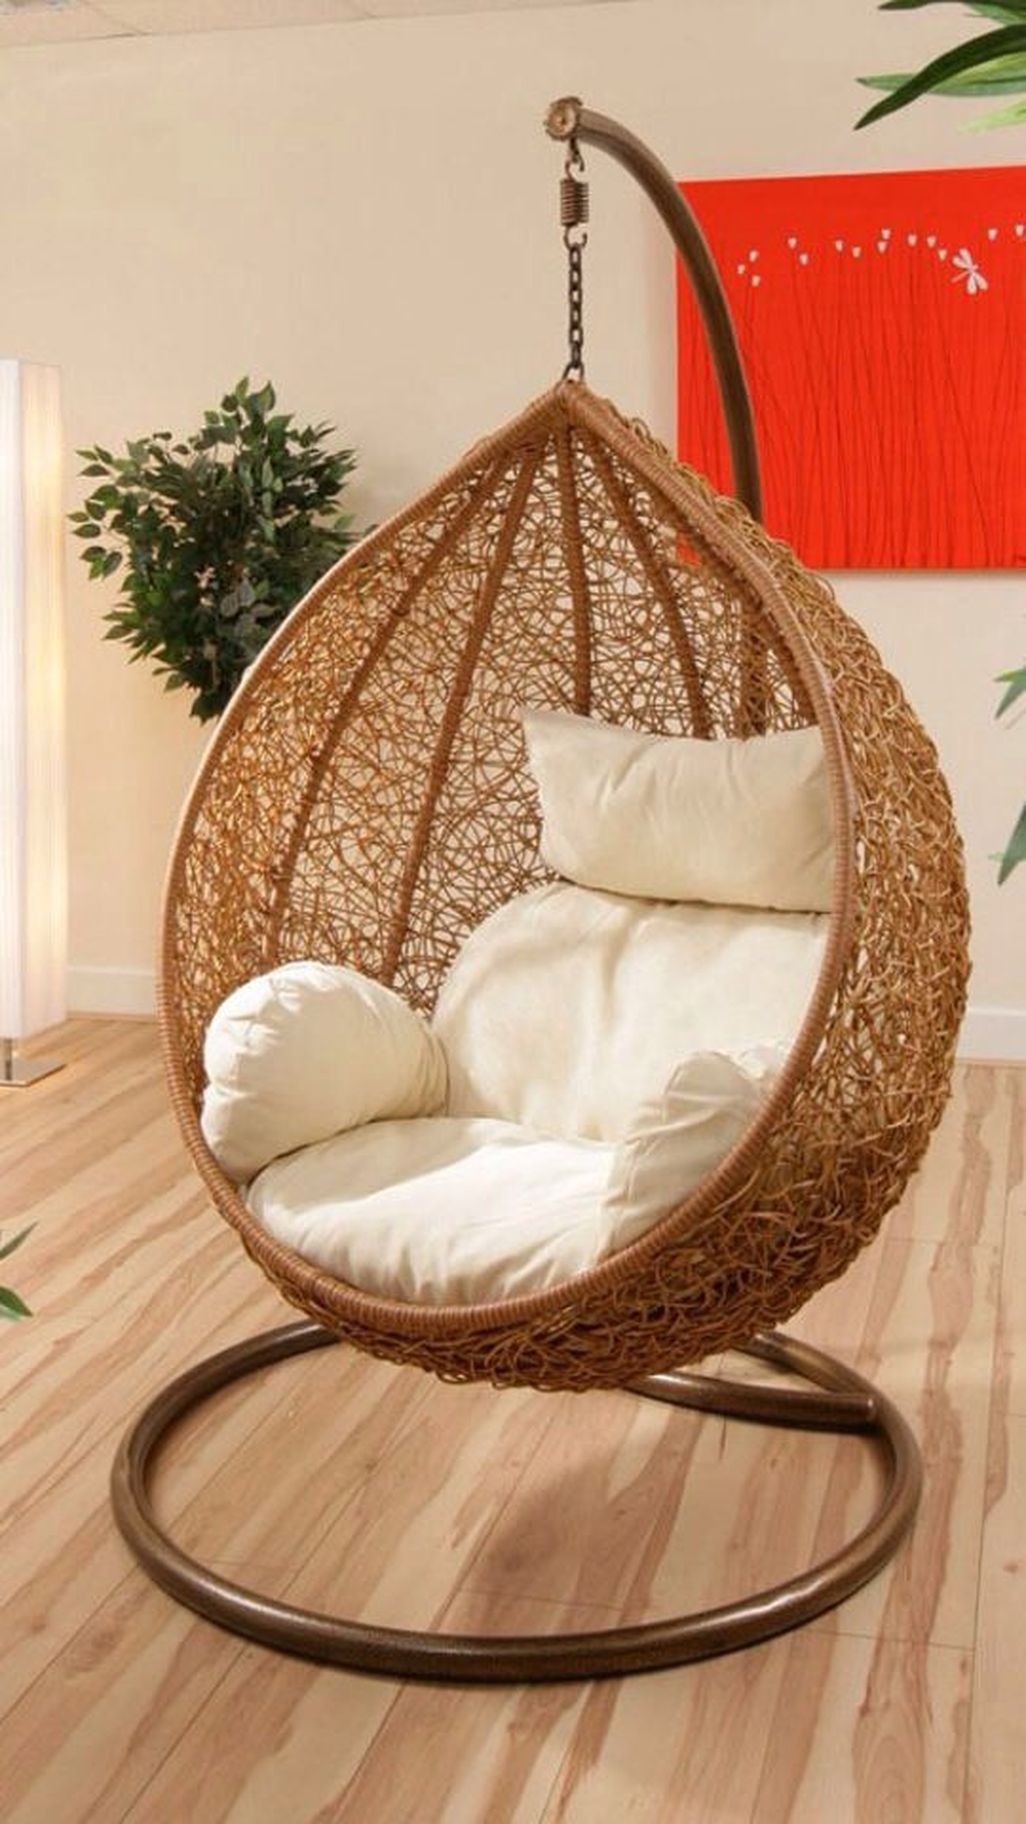 41 Modern Hanging Swing Chair Stand Indoor Decor Diy